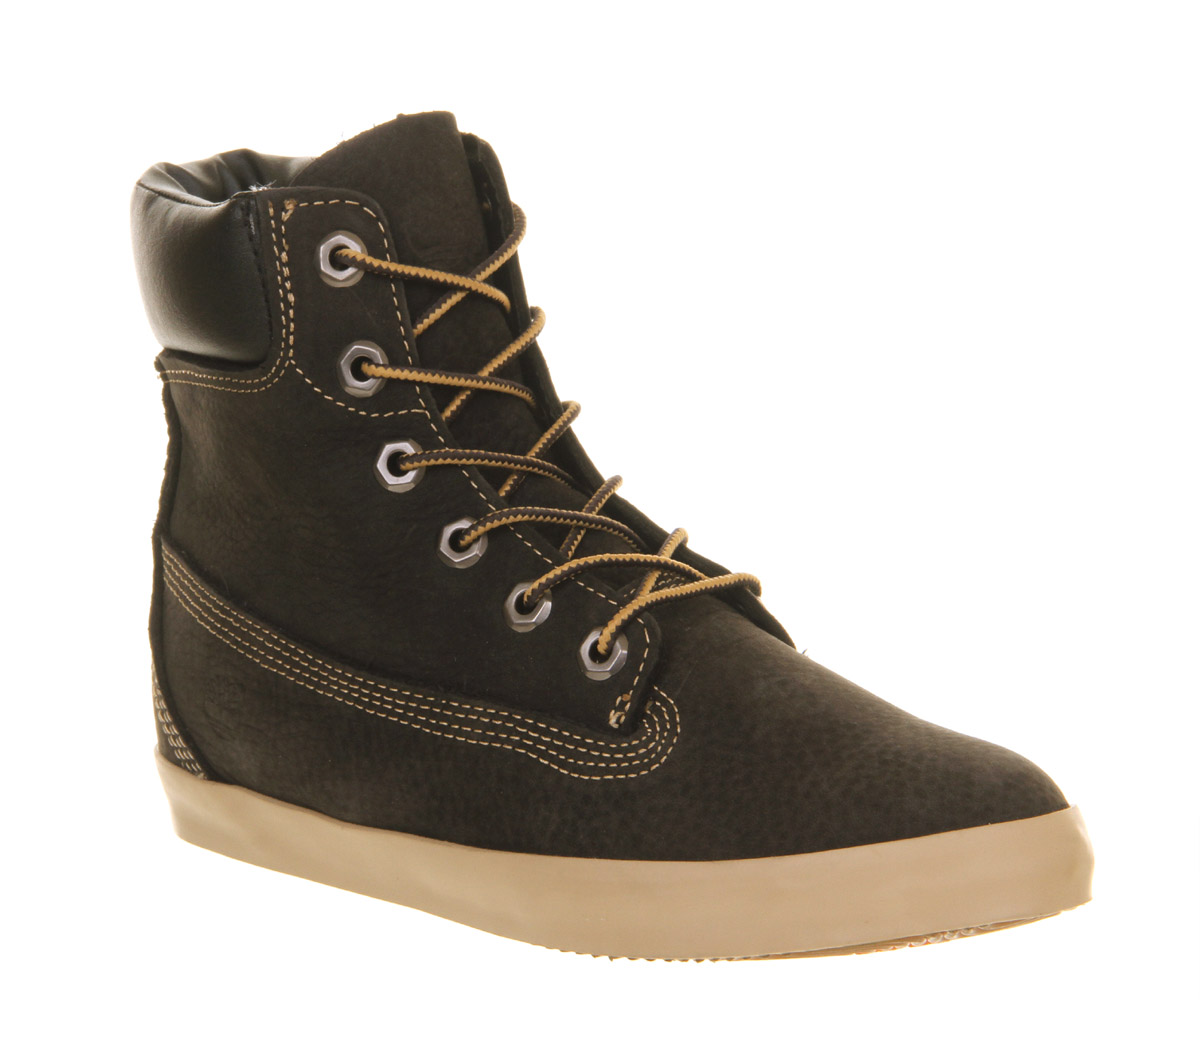 Amazing Timberland Boots For Women Black Aranjackson.co.uk